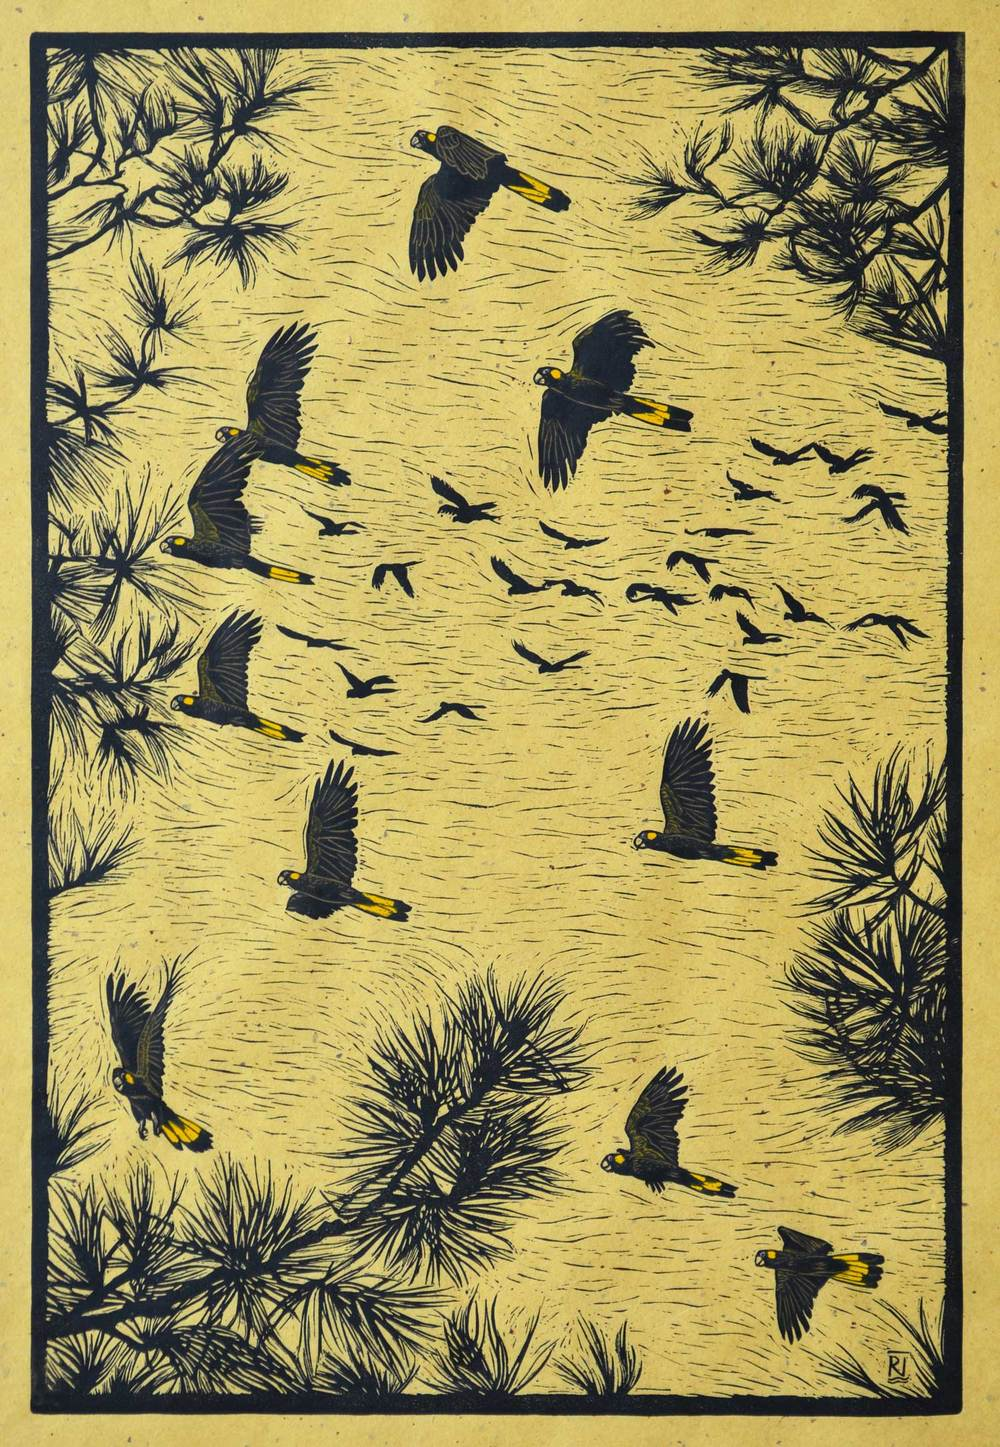 Yellow-tailed black cockatoos in flight 63 x 42 cm    Edition of 50 $1,000 Hand coloured linocut on handmade Japaese paper